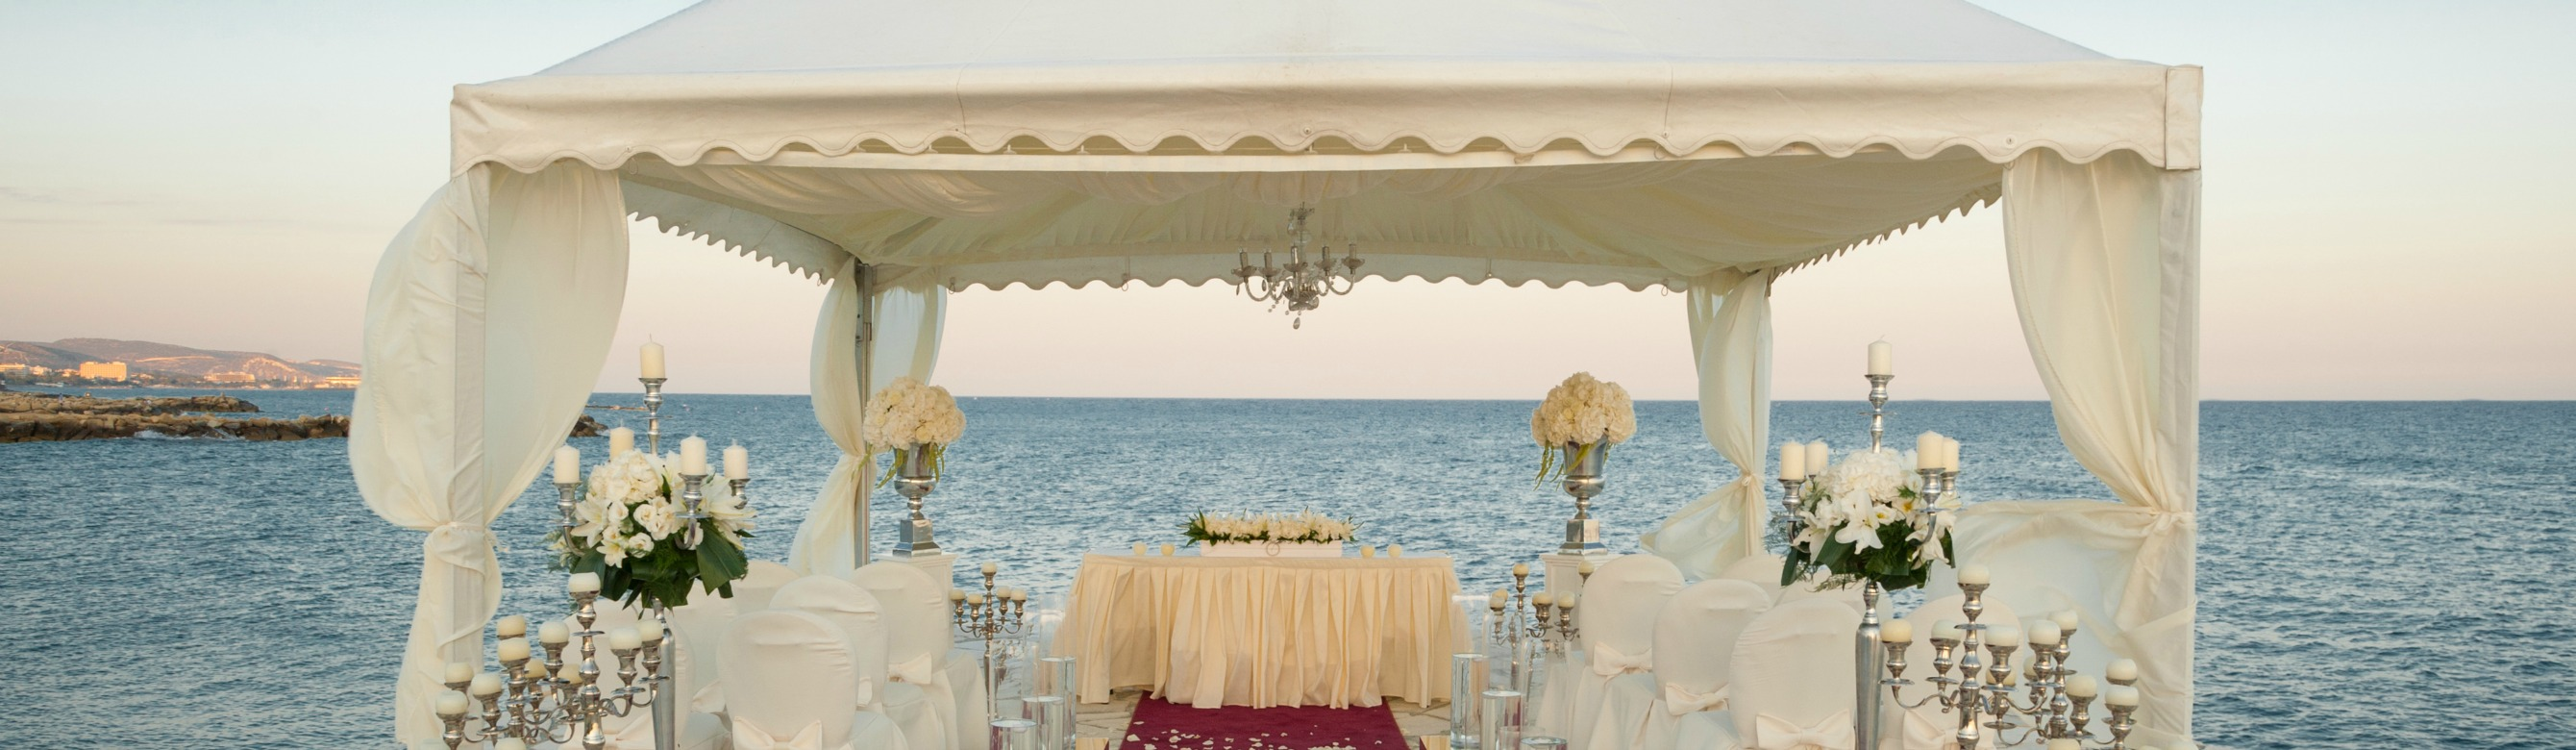 FourSeasonsCyprus_Weddings_pier.jpg